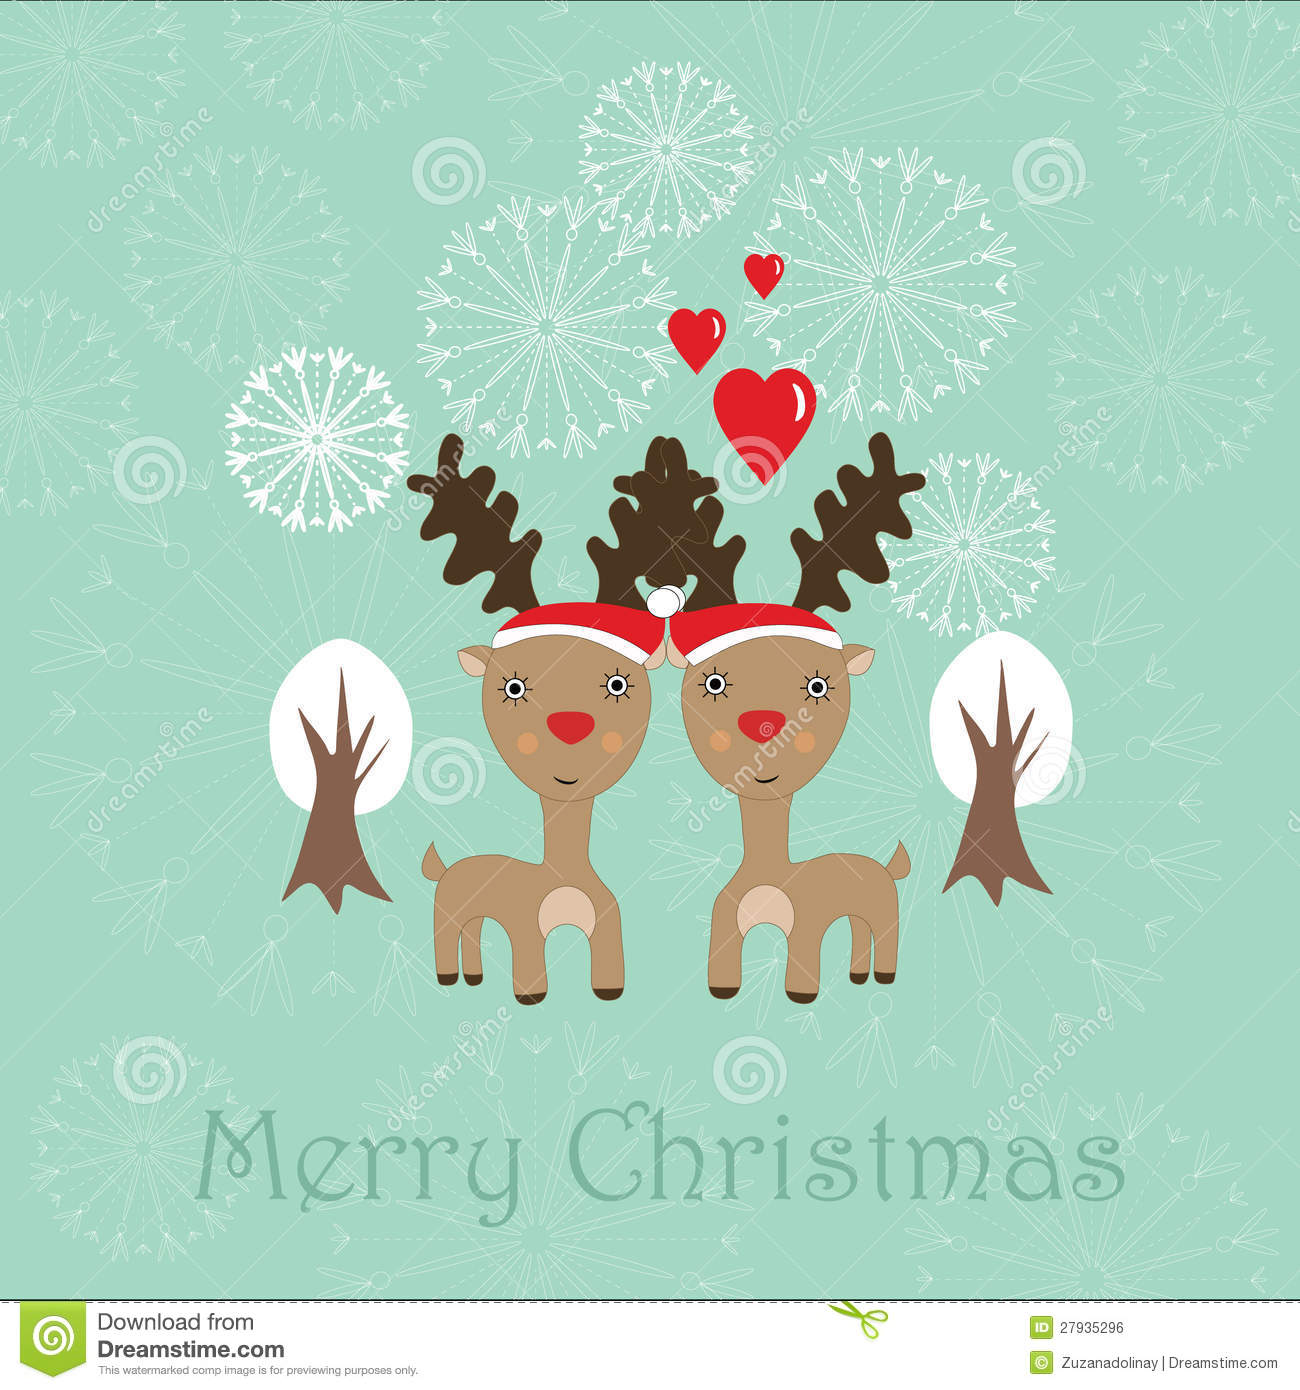 Cute Christmas Card With Two Reindeer Royalty Free Stock Image ...